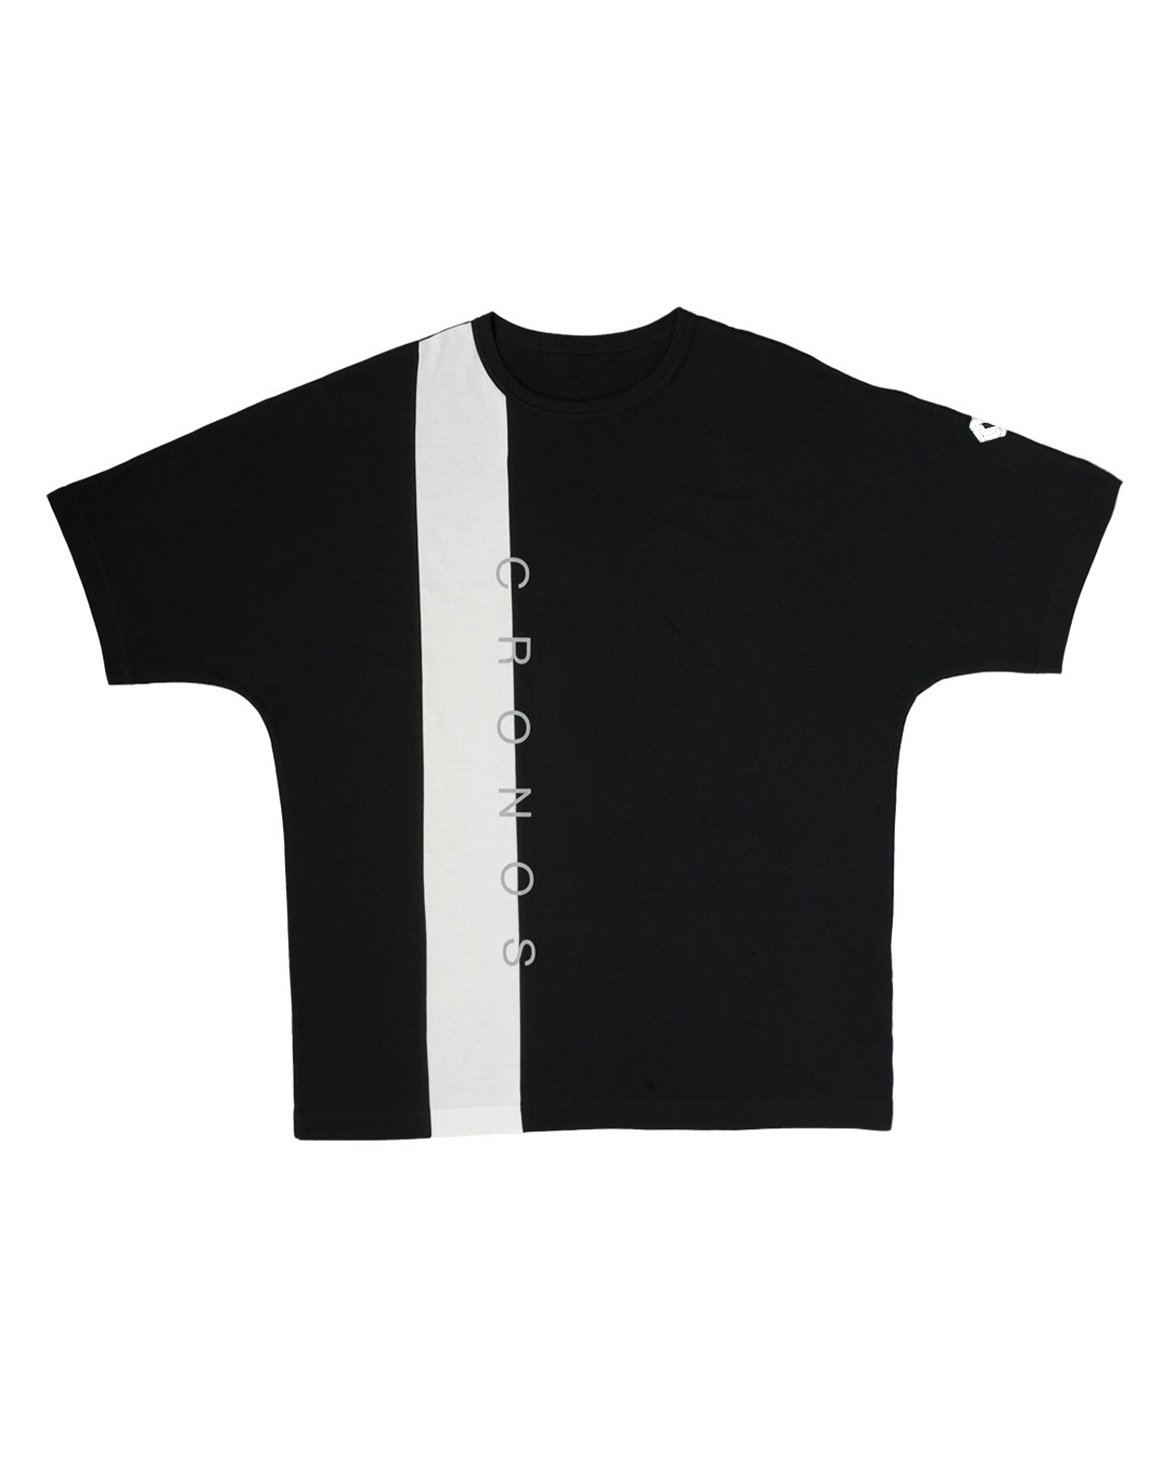 <img class='new_mark_img1' src='https://img.shop-pro.jp/img/new/icons1.gif' style='border:none;display:inline;margin:0px;padding:0px;width:auto;' />CRONOS VERTICAL LINE OVER SIZE T-SHIRTS【BLACK】